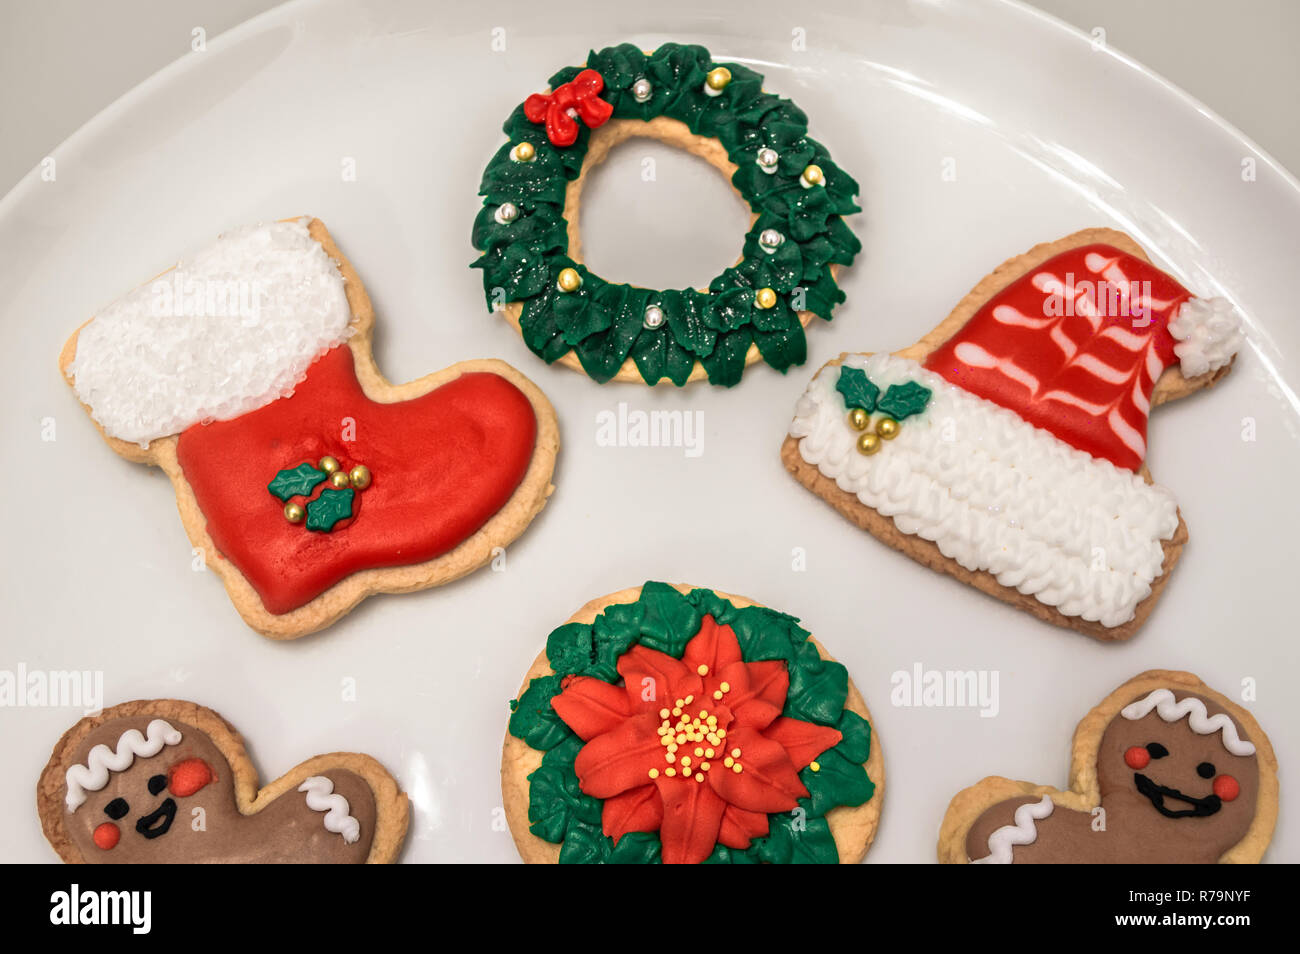 Traditional Christmas Cookies With Different Shapes Santa Hat And